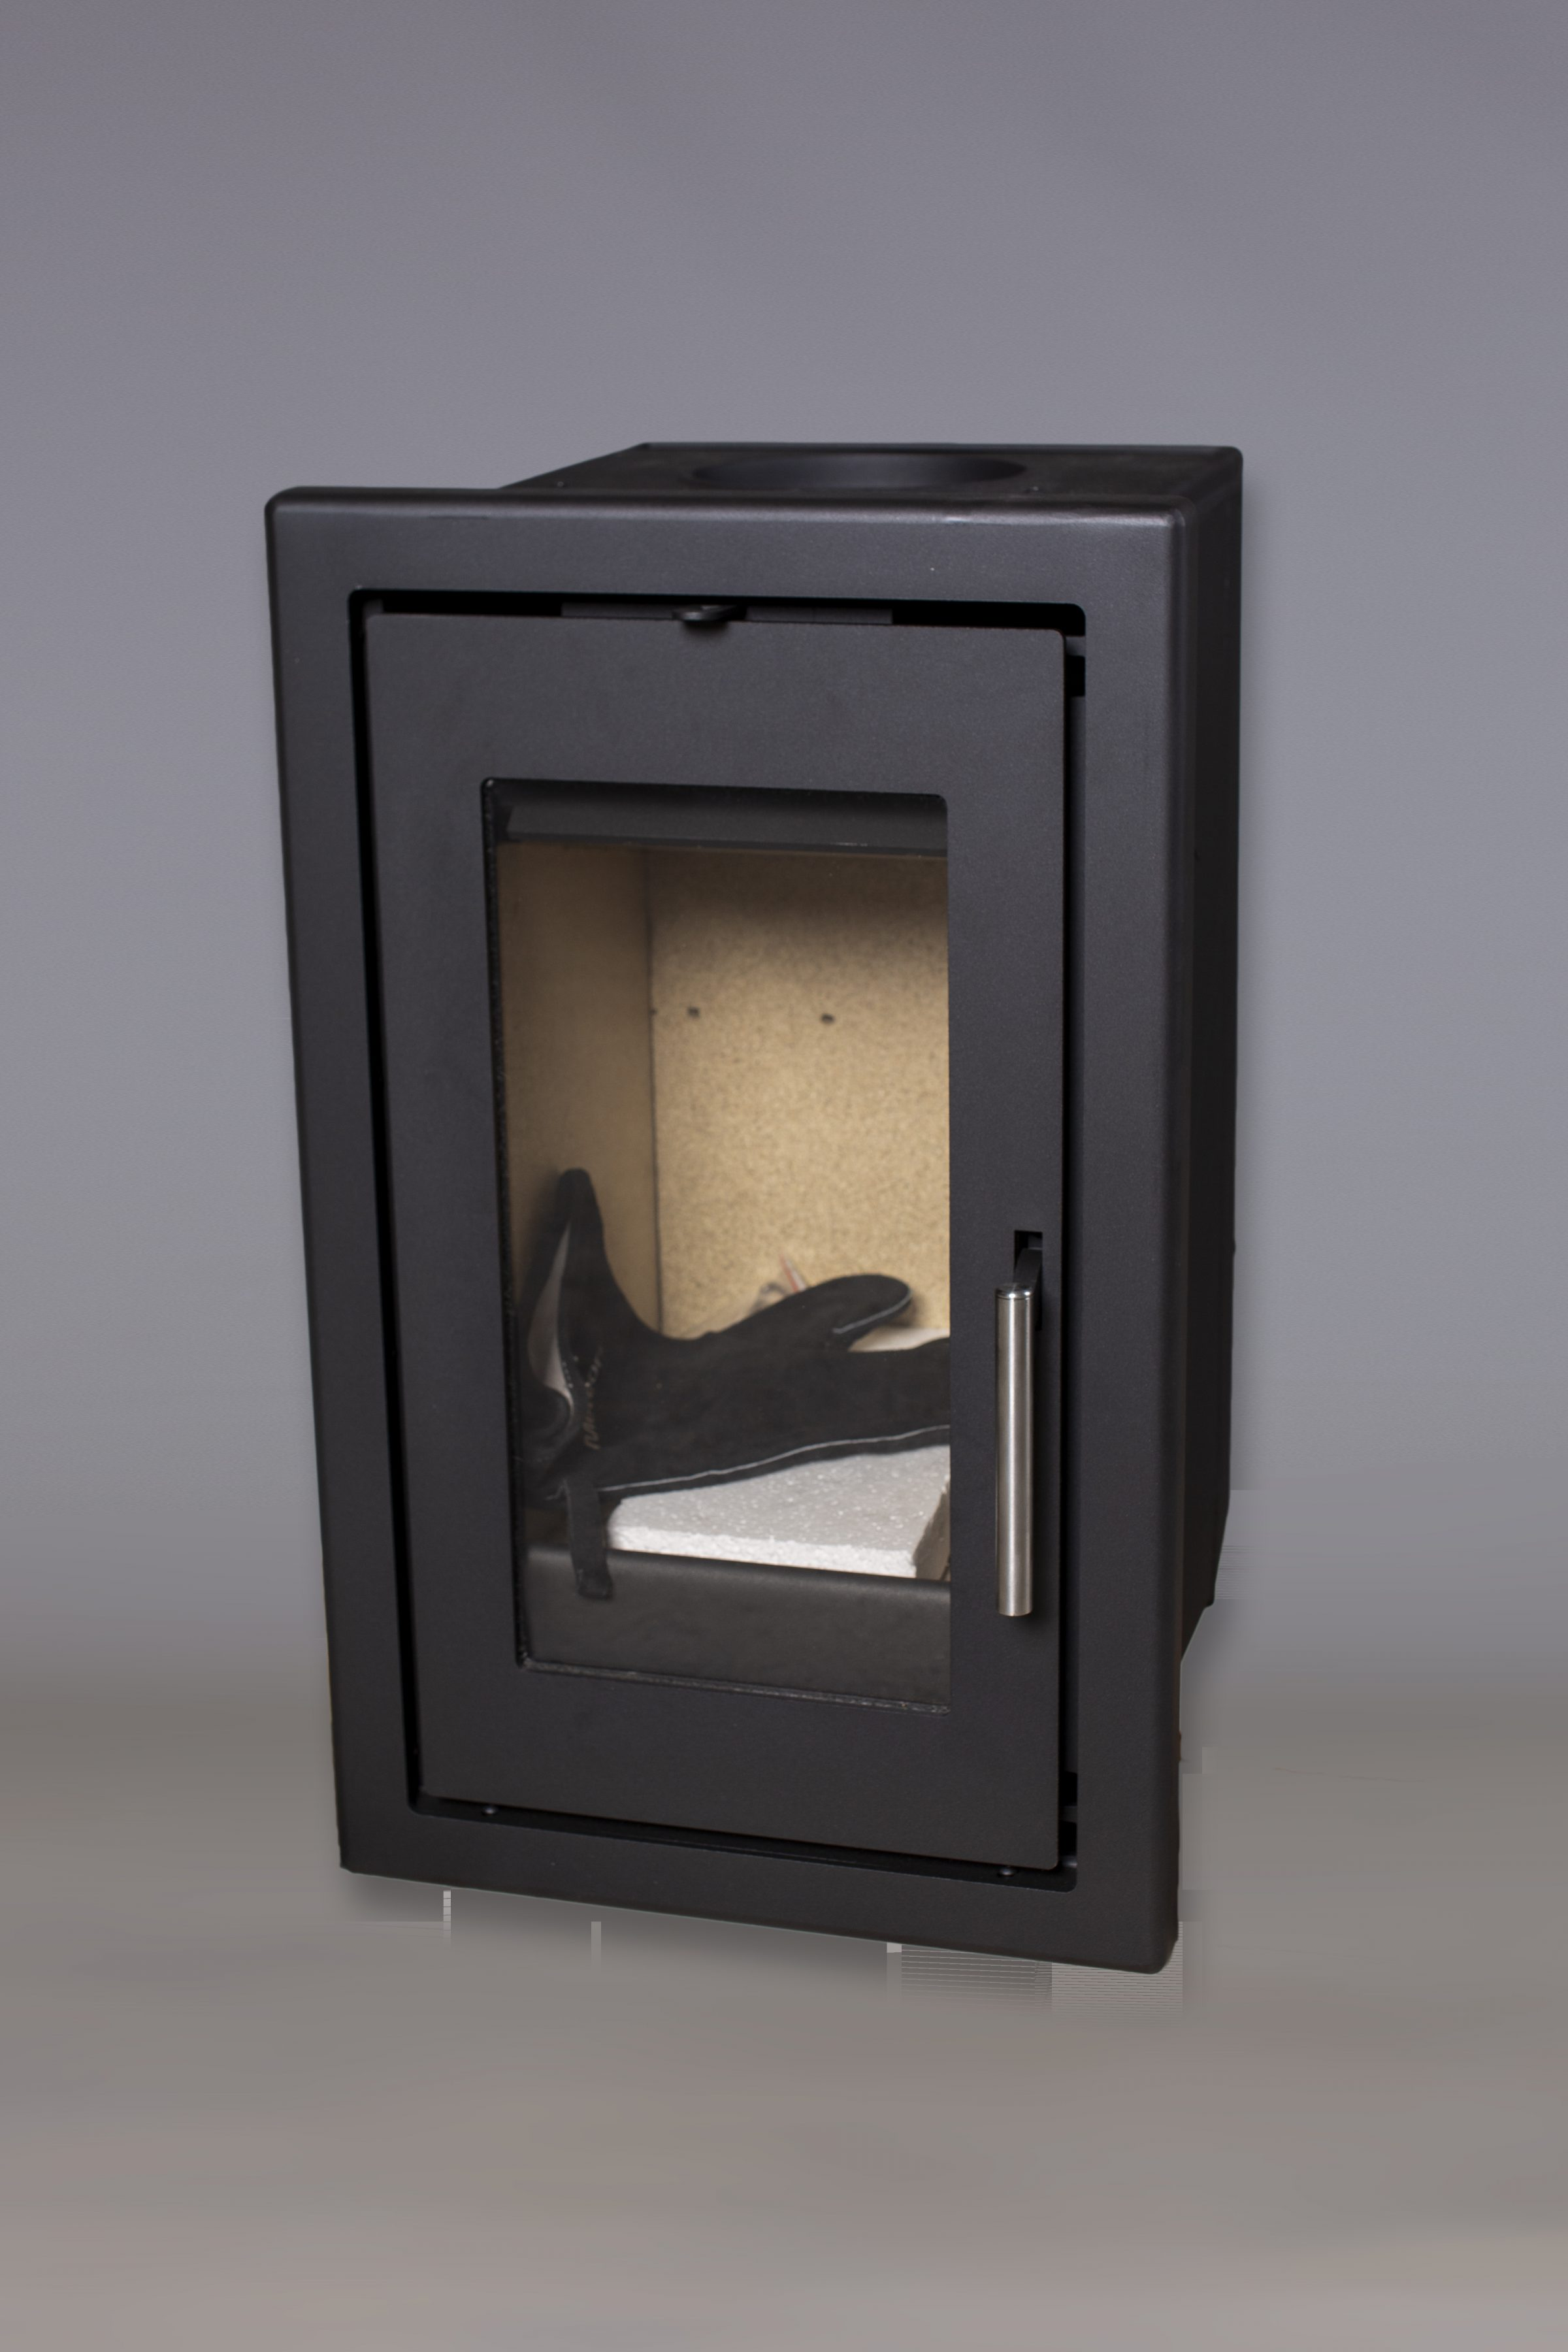 Celsius – The volcanic pumice log burning stove package